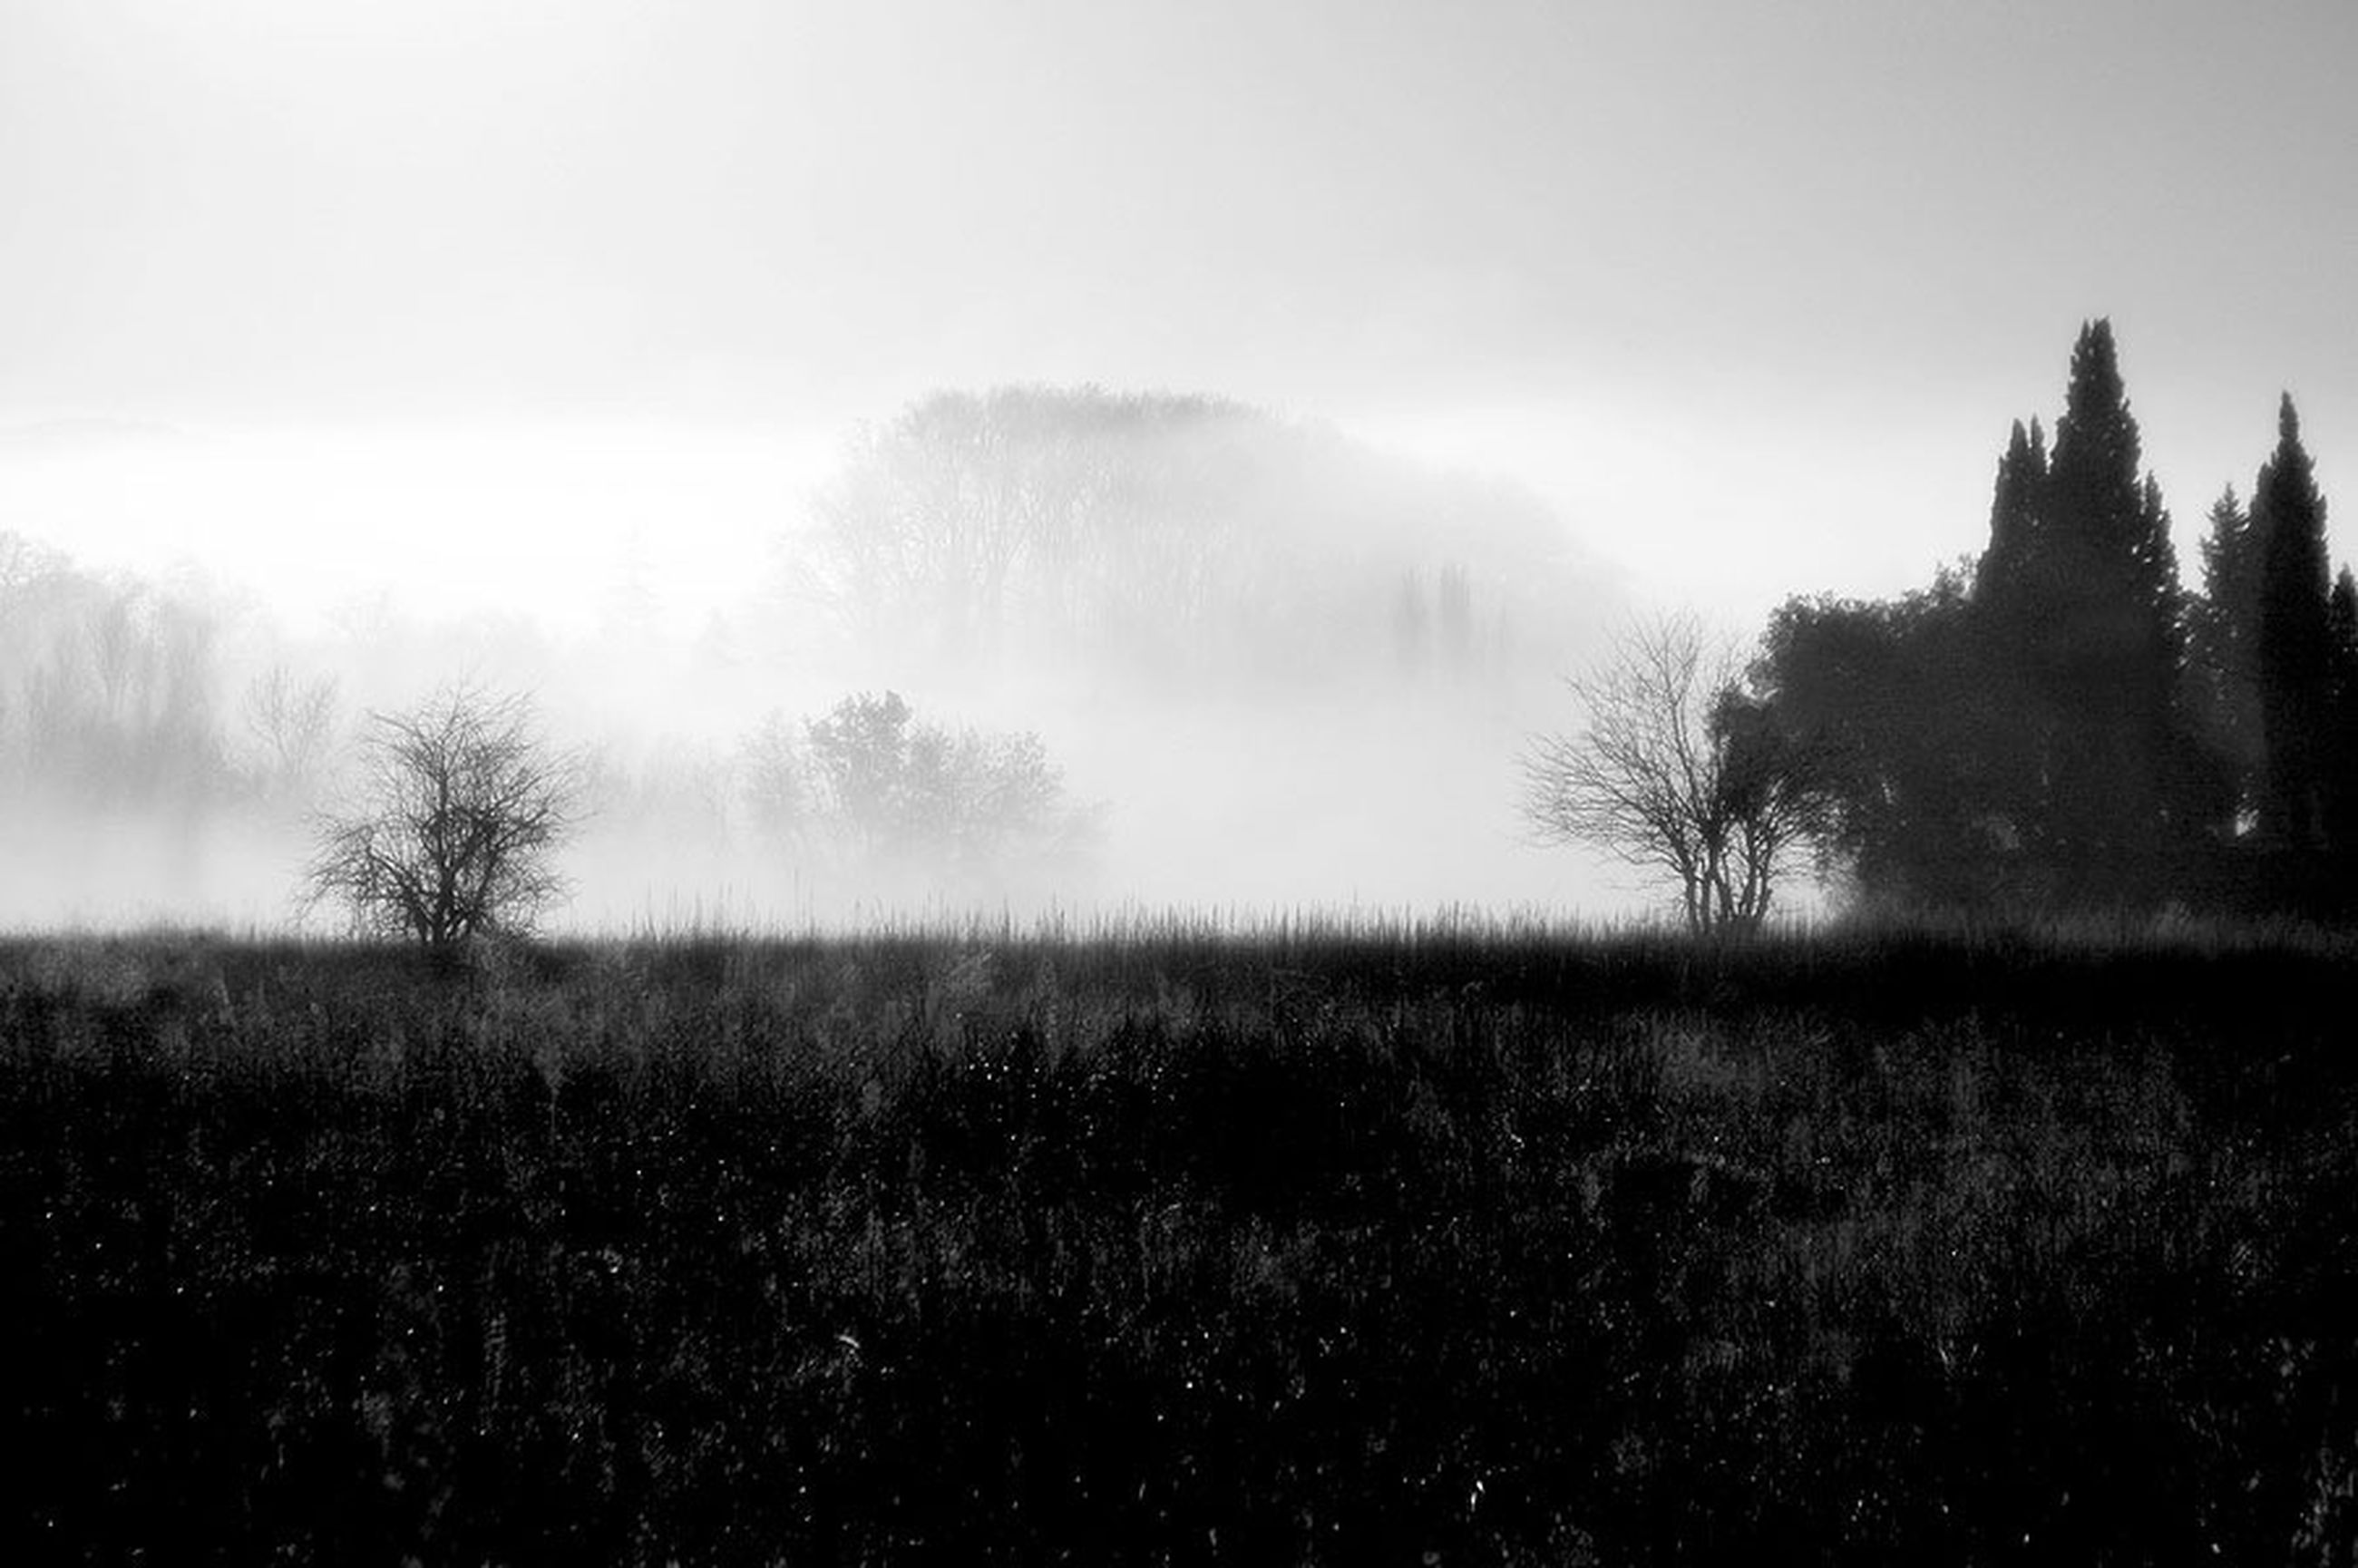 fog, foggy, tree, tranquil scene, tranquility, landscape, scenics, field, beauty in nature, nature, weather, sky, mist, grass, non-urban scene, growth, copy space, bare tree, silhouette